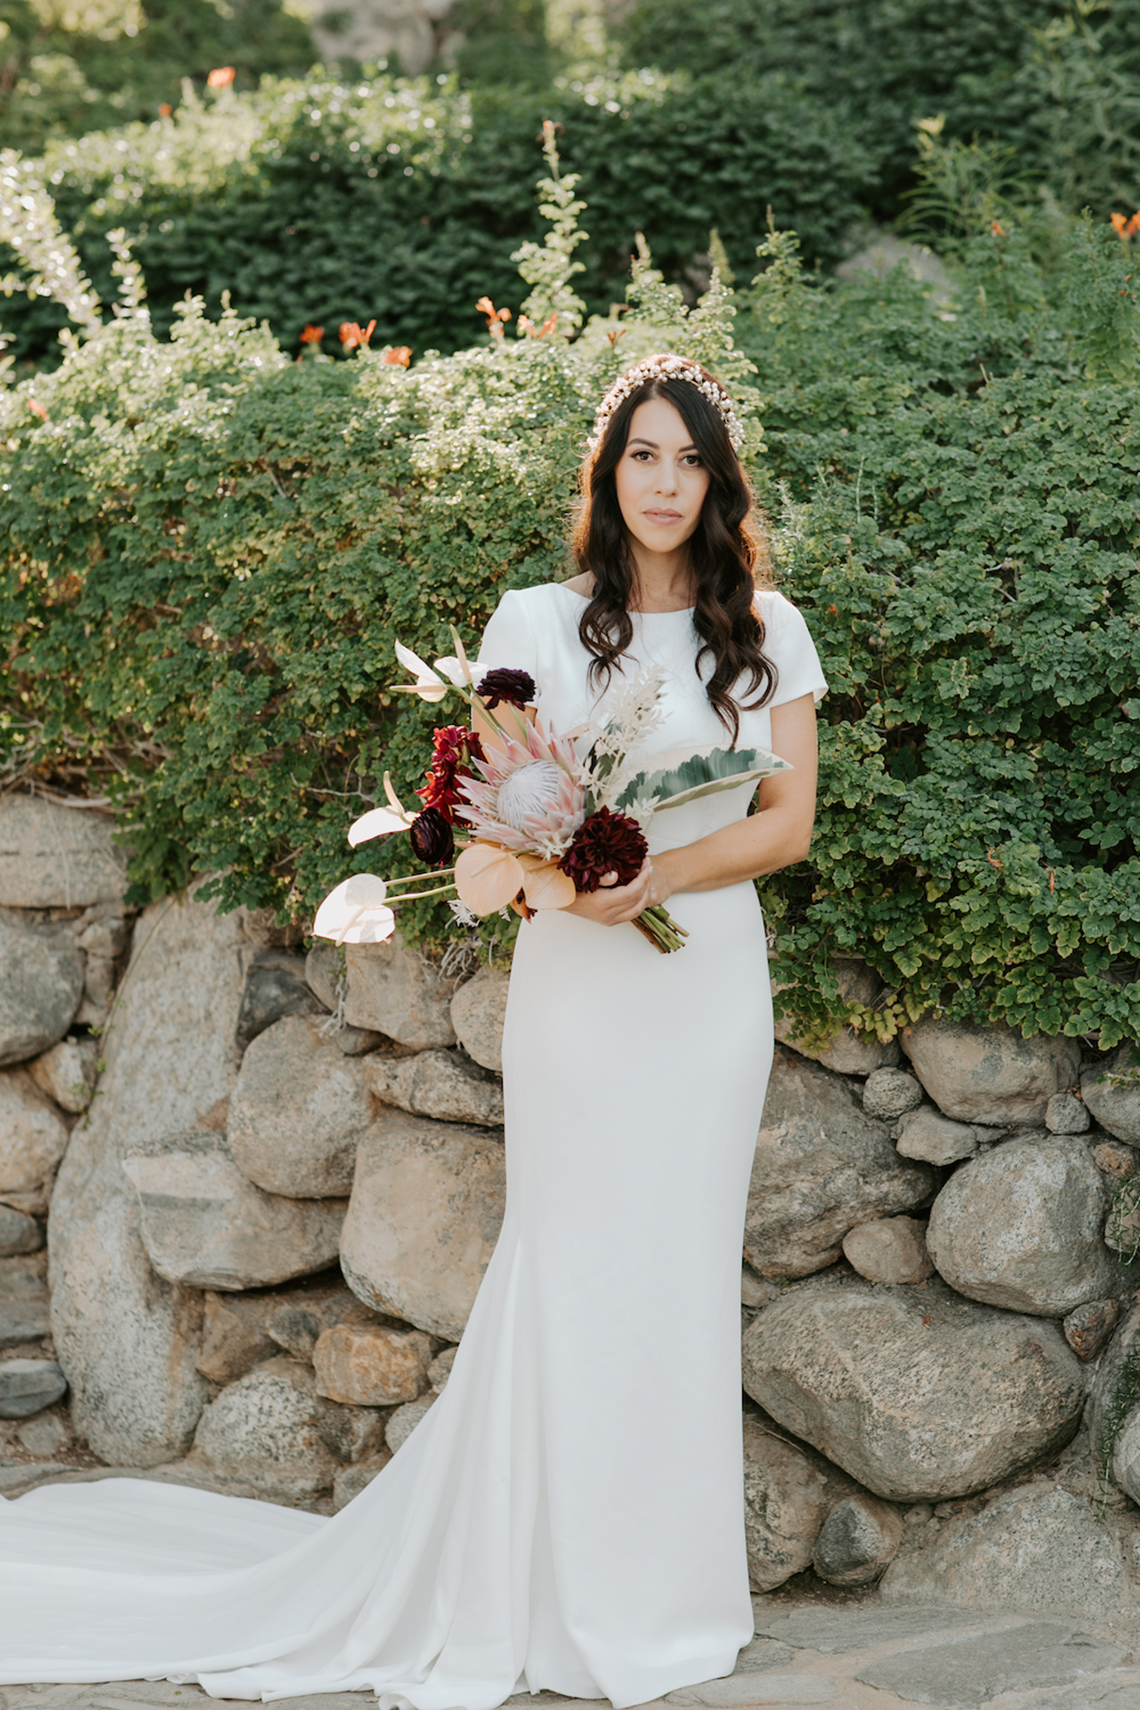 Ultra-Stylish Palm Springs Wedding with Modern Black Details – Frederick Loewe Estate – Mary Claire Roman 37